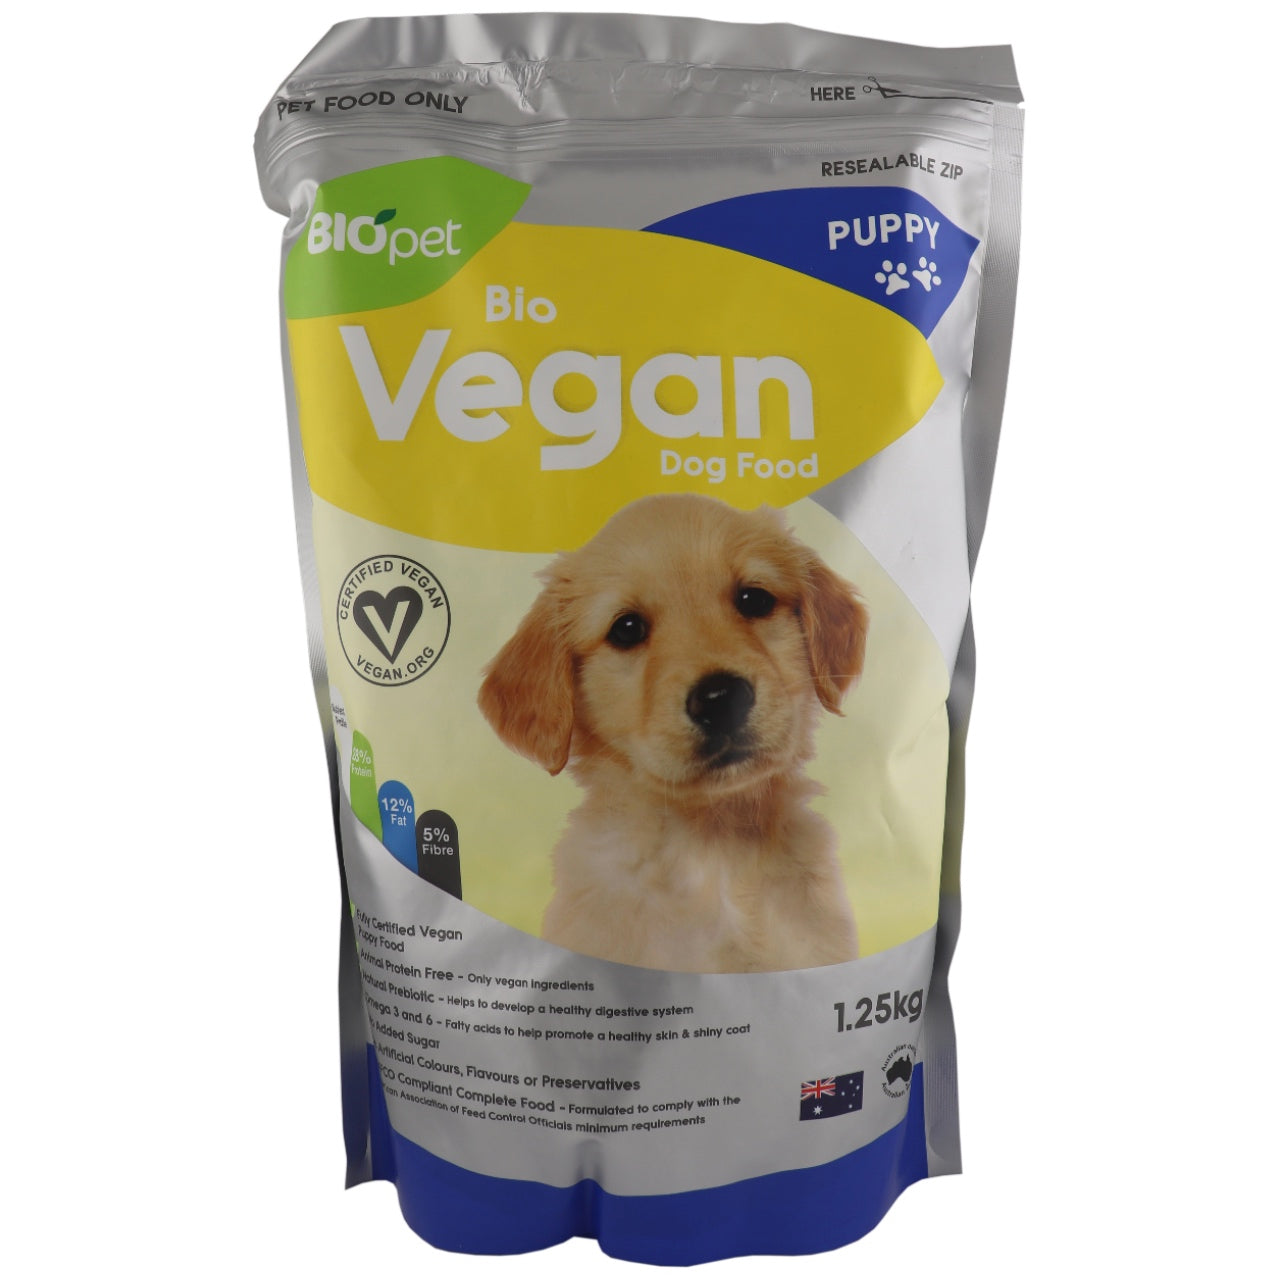 Biopet Vegan Puppy Food